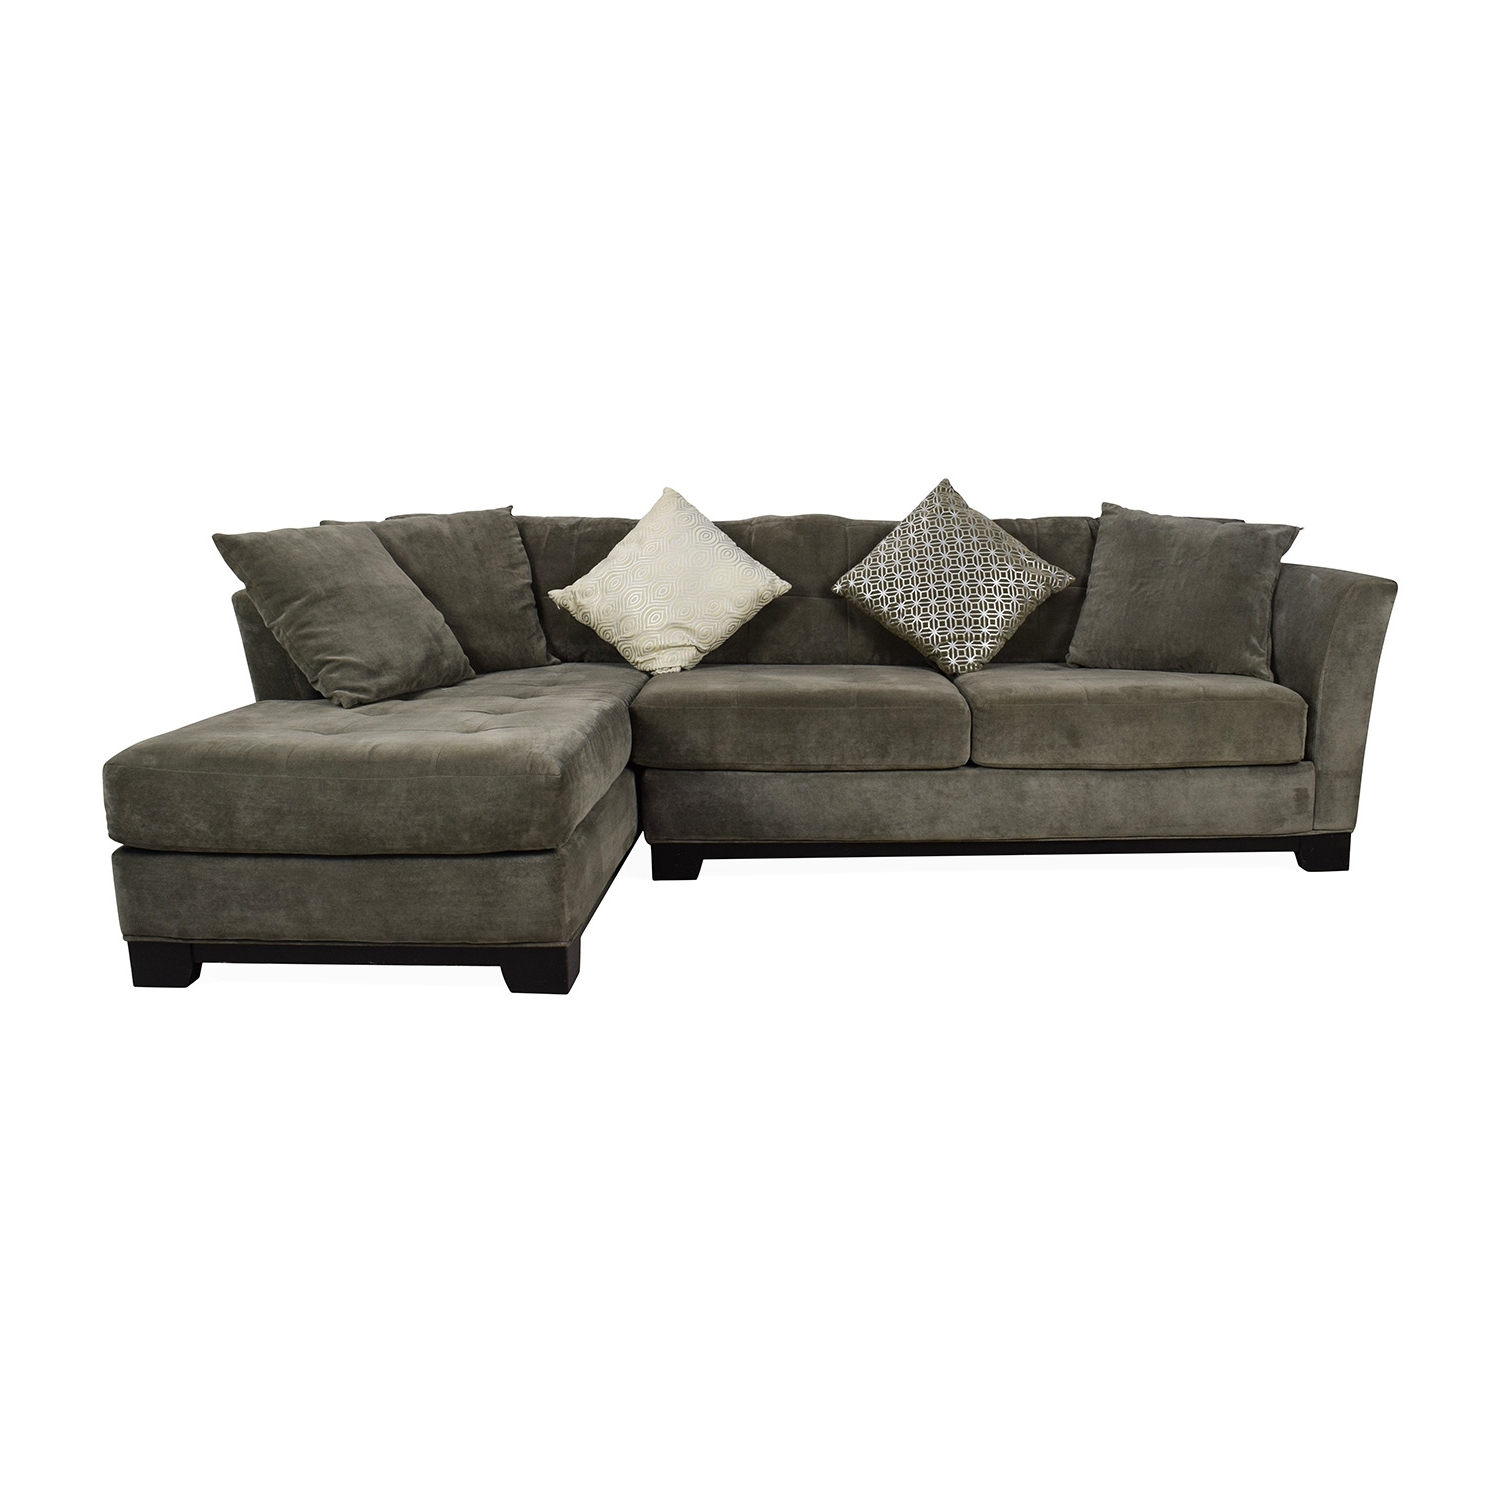 50 Off Macys Gray Sectional Couch With Chaise Sofas